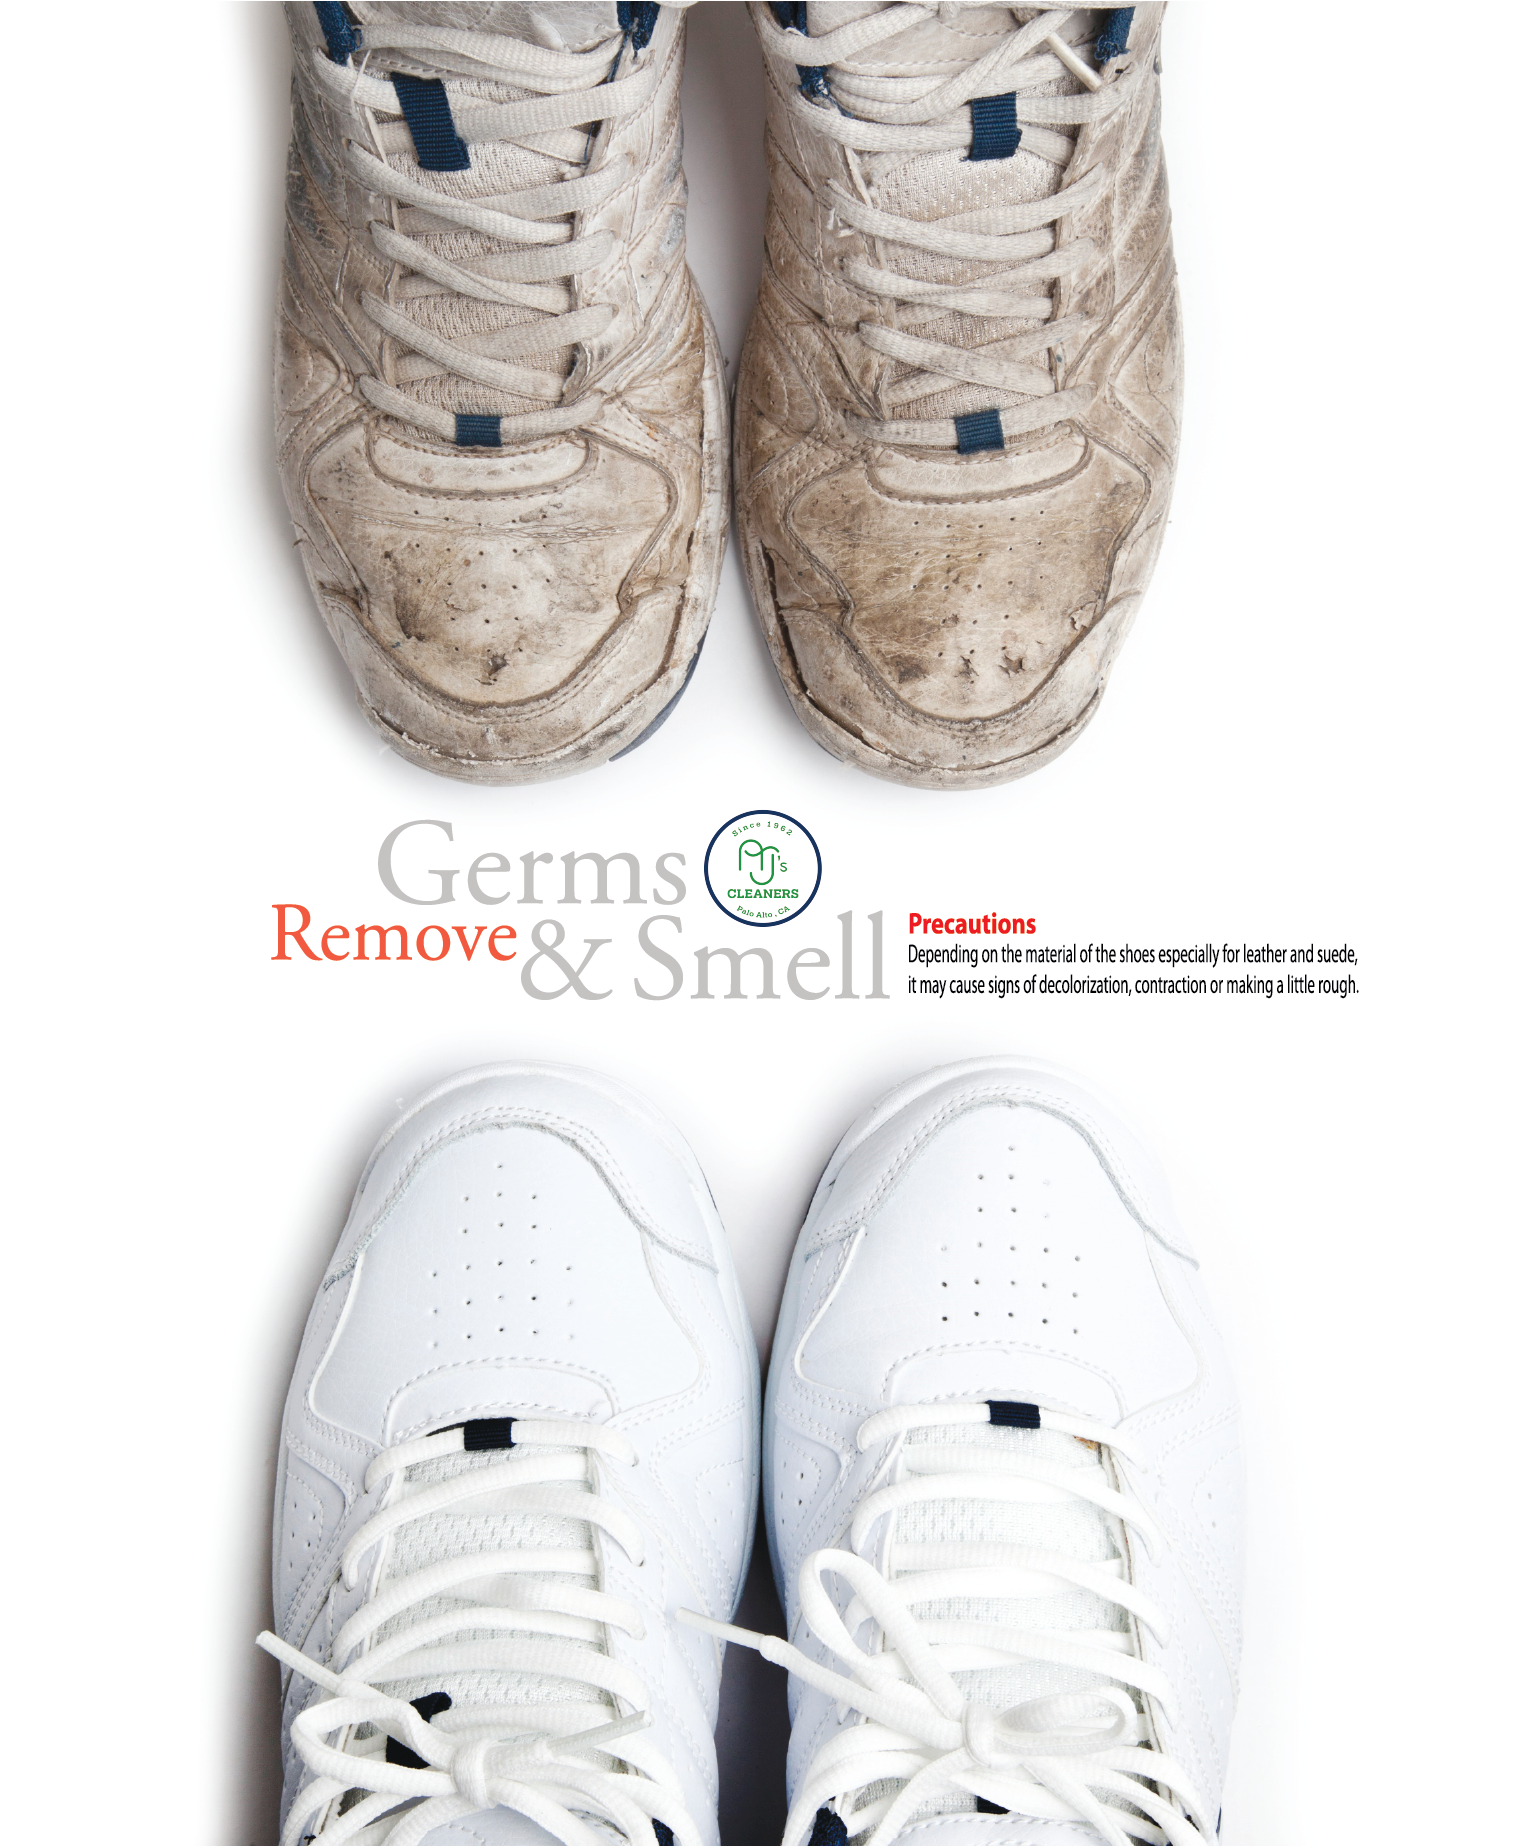 Precaution: Depending on the material of the shoes, especially, leather or suede, it may cause signs of decolorization or a little tough result.